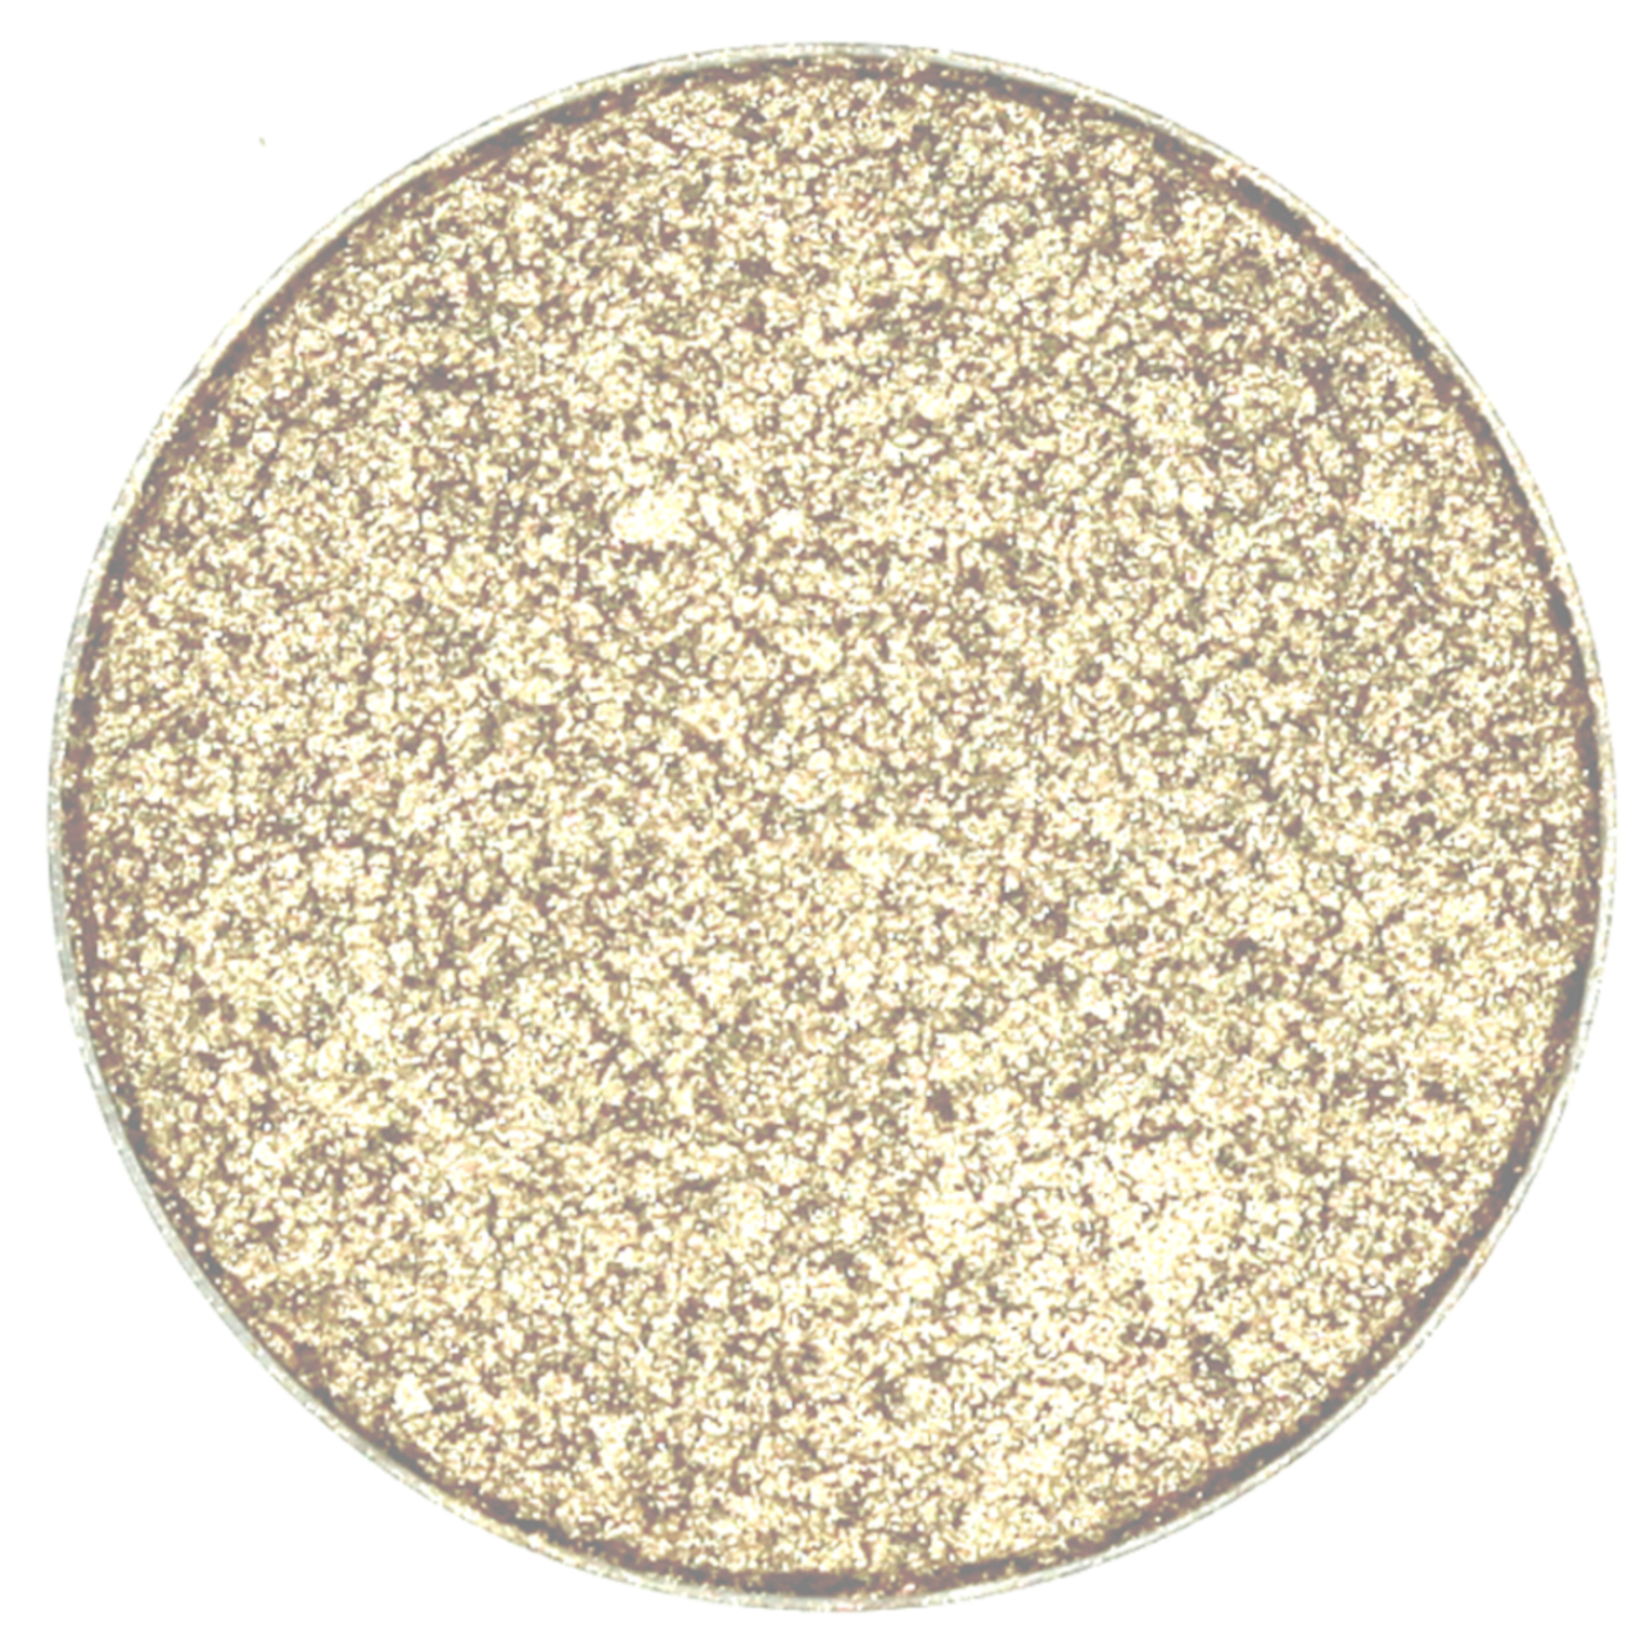 JKC EYESHADOW - Truth Be Gold